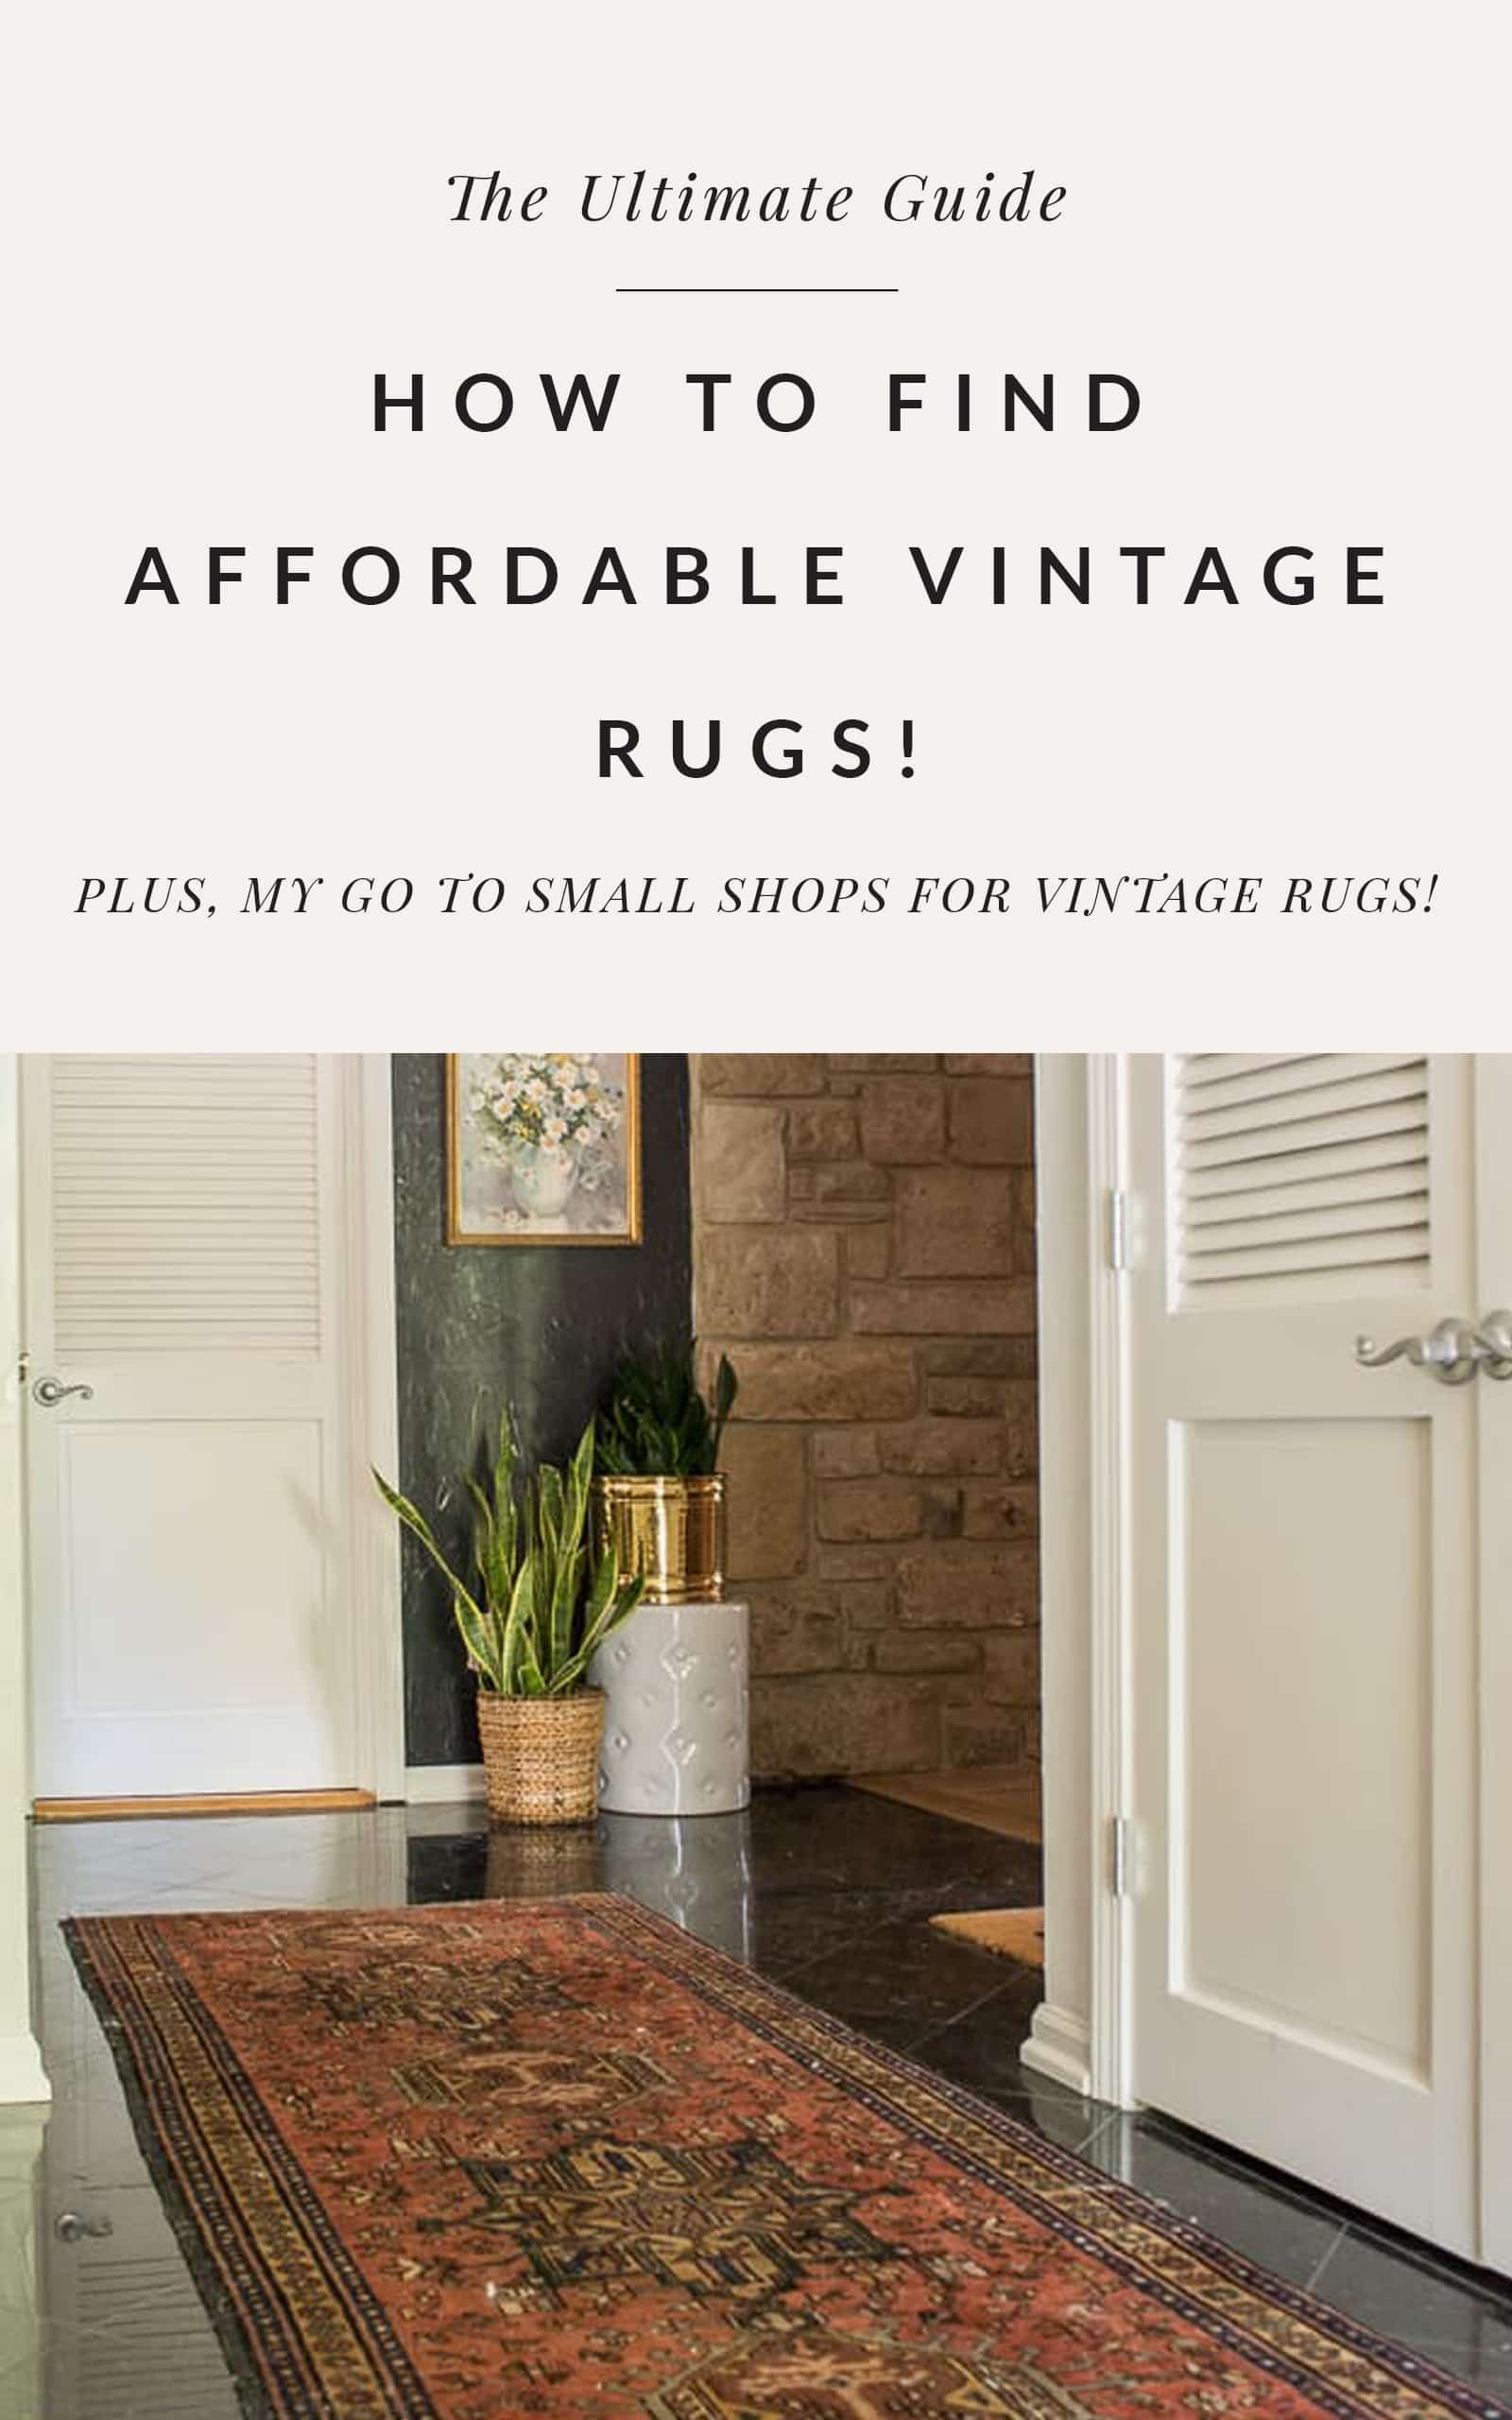 Stumped on Where to Buy Affordable Vintage Rugs? Today, I'm sharing my tips on how to buy Persian rugs. #vintagerugs #persianrugs #usedrugs #vintagerug #persianrugs